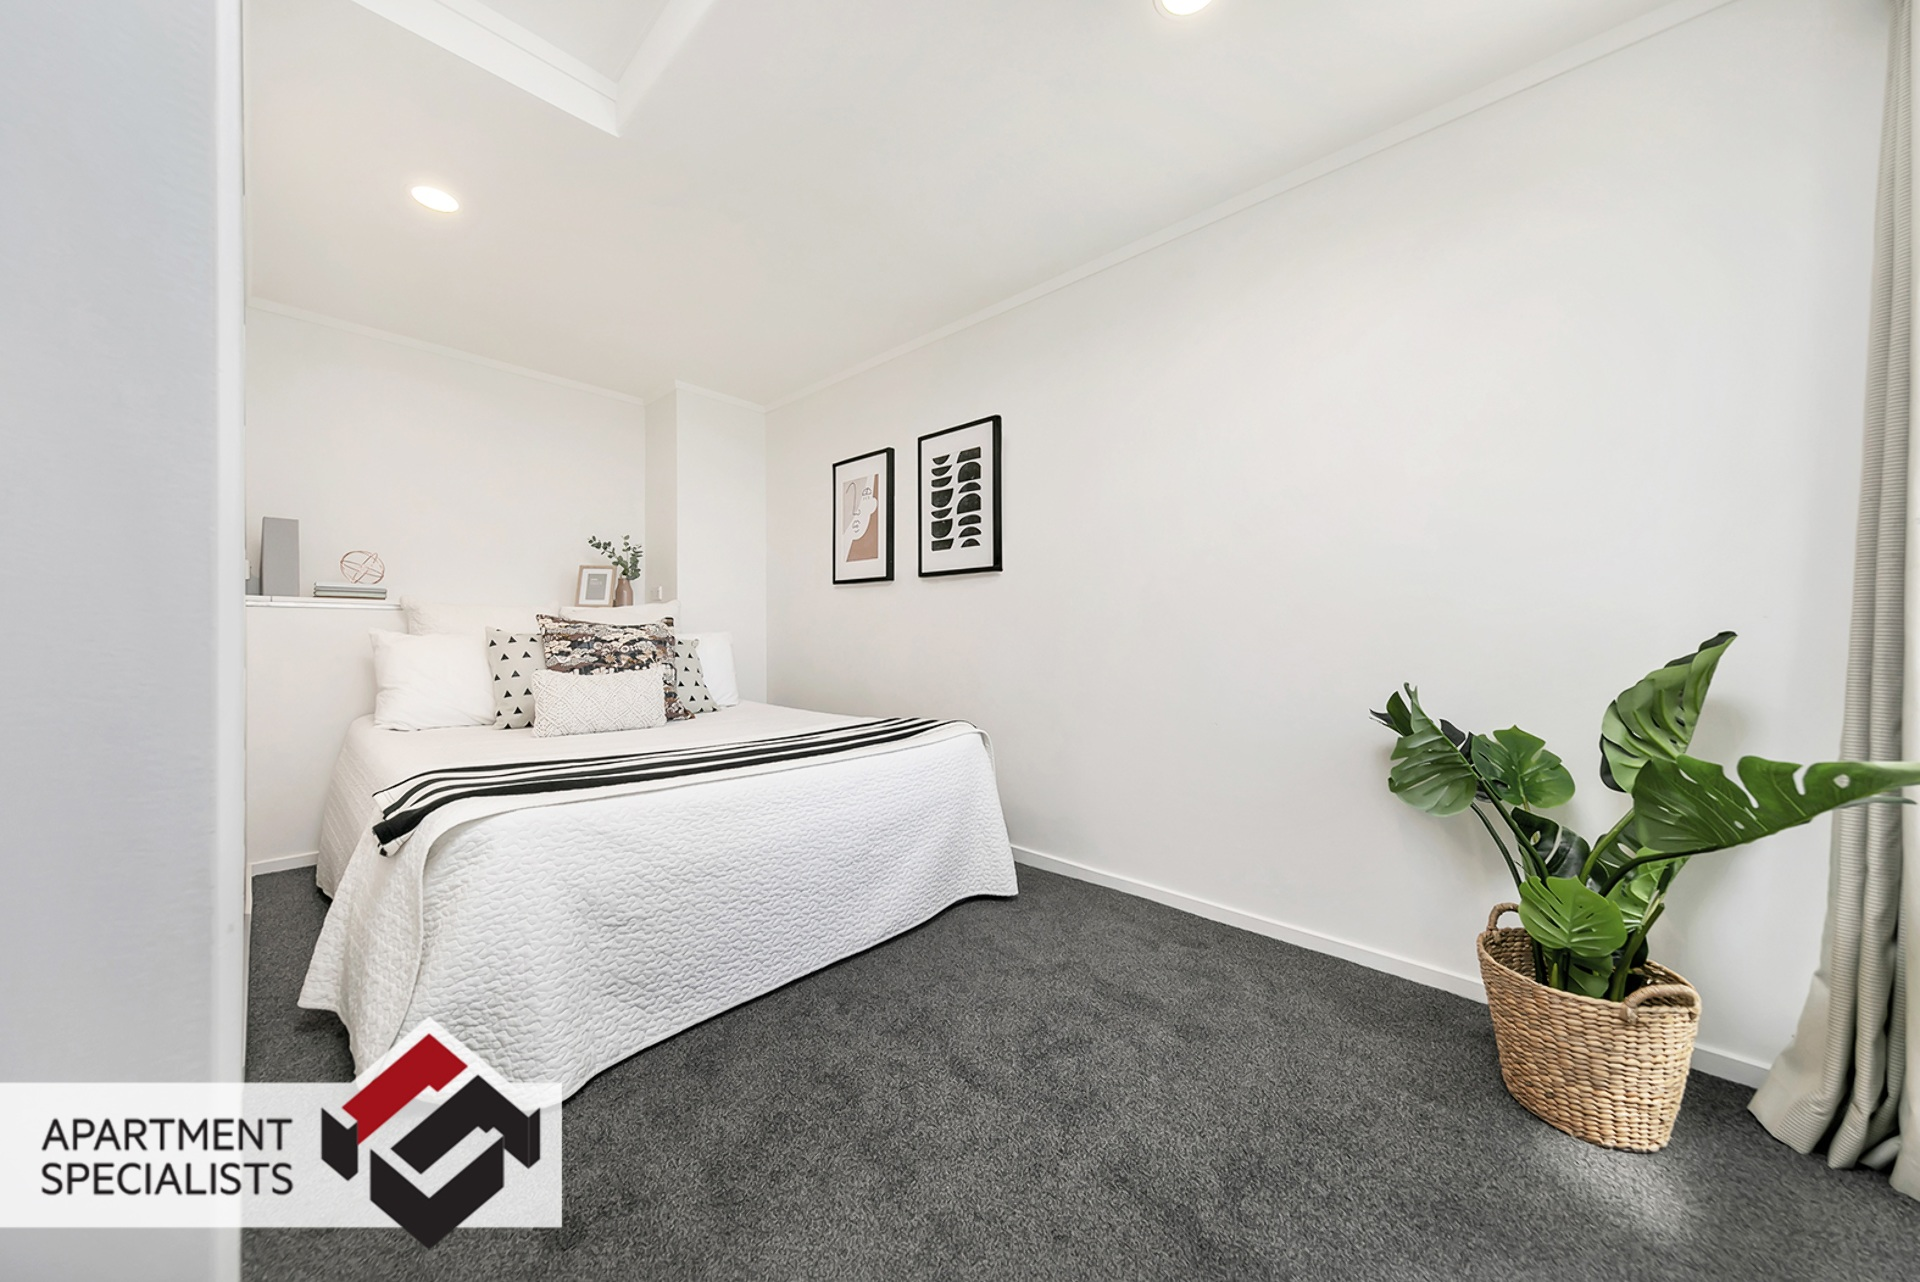 8 | 6 Whitaker Place, City Centre | Apartment Specialists